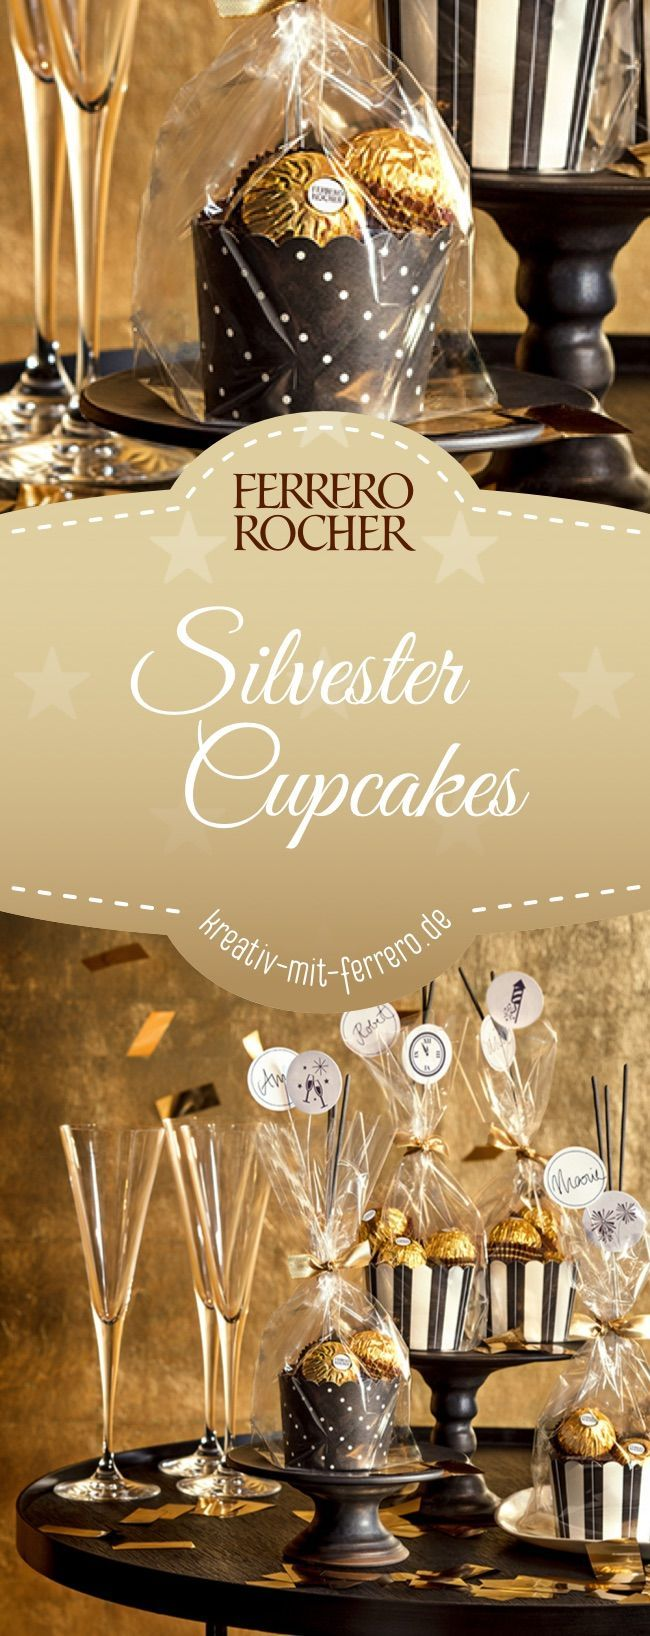 Silvester-Cupcakes